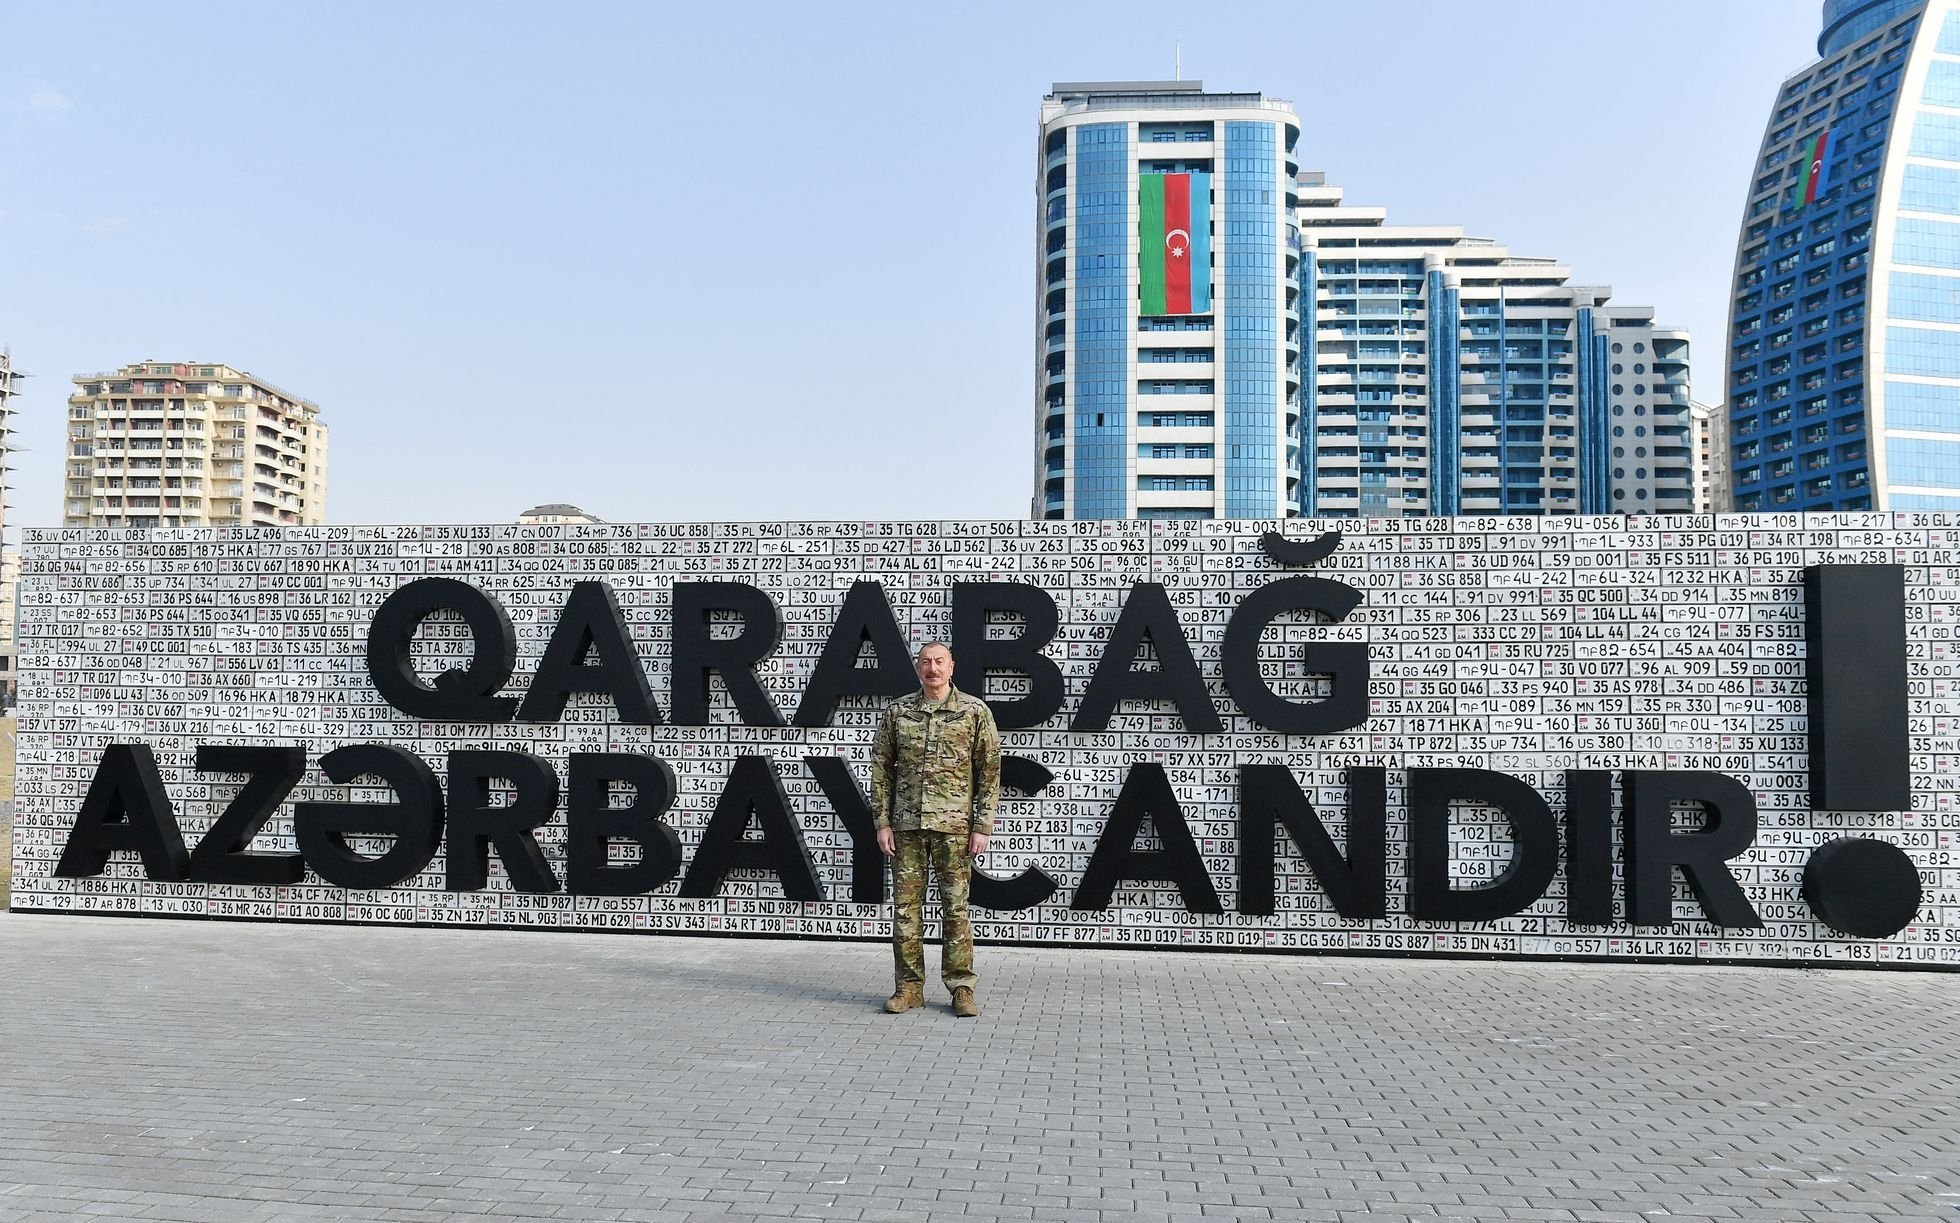 Azerbaijani President Ilham Aliyev stands in front of a wall decorated with Armenian license plates and reading 'Karabakh is Azerbaijan!' as he tours the open-air museum that showcases military equipment seized from Armenian troops during the Nagorno-Karabakh war last year, Baku, Azerbaijan, April 12, 2021 (Handout photo from the Azerbaijani Presidential Press Office via AFP).